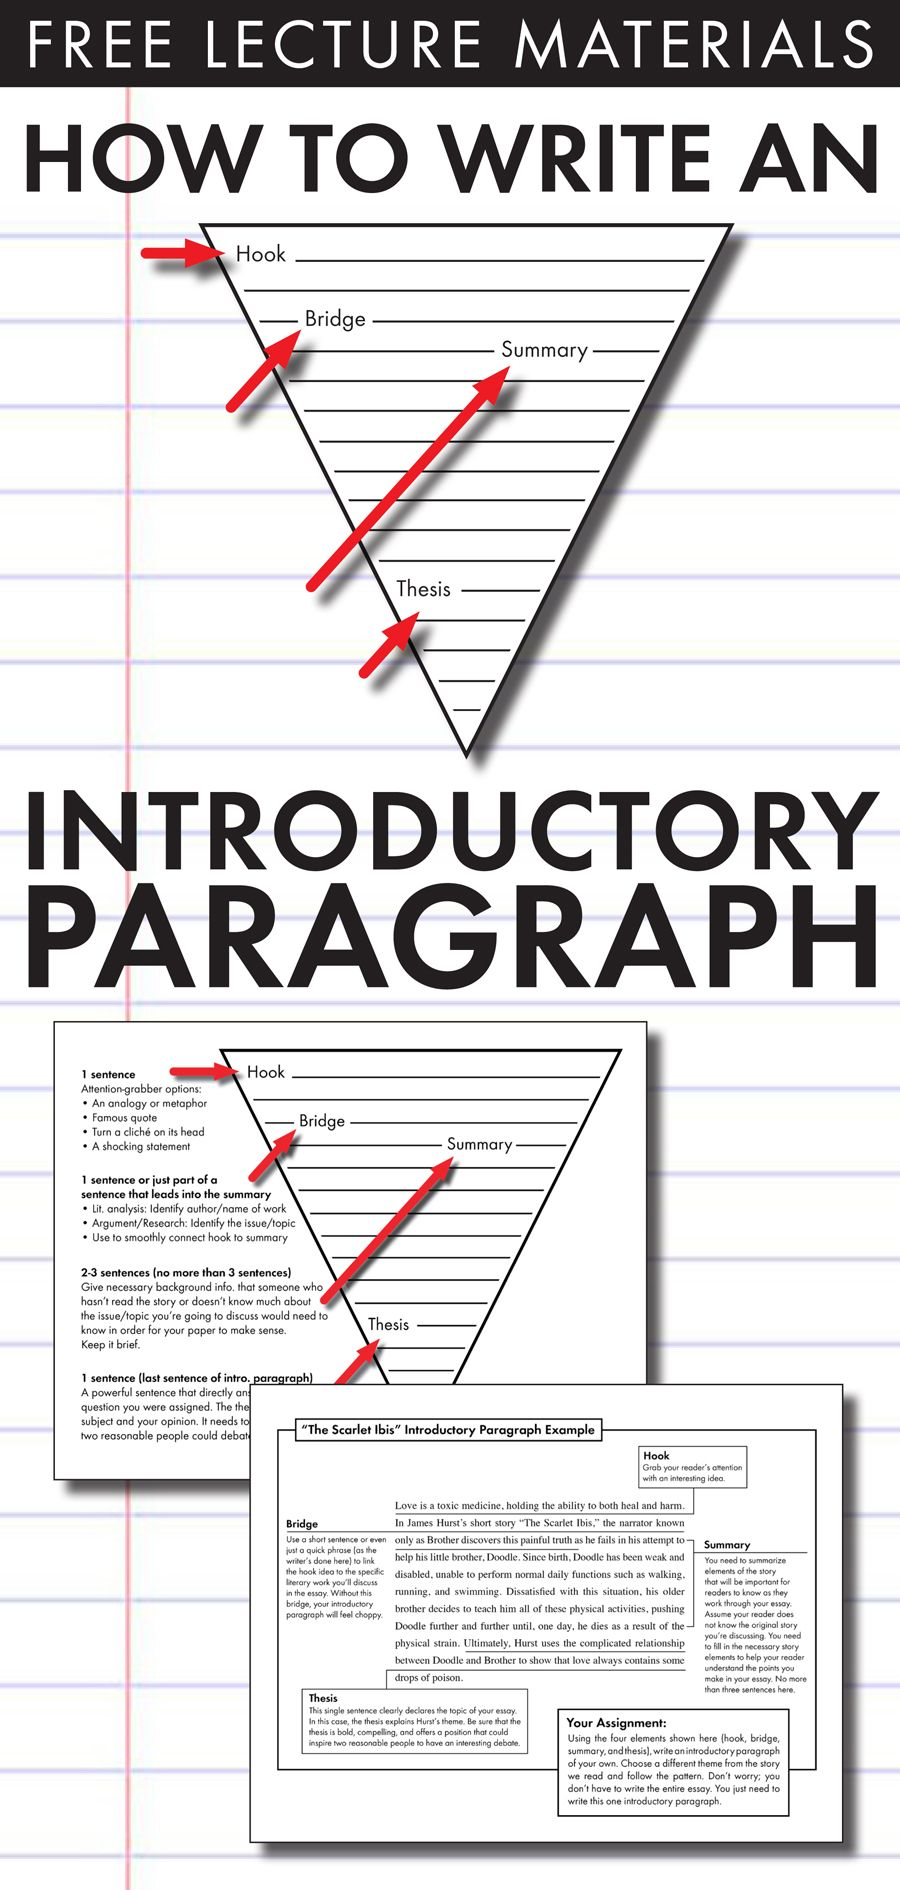 steps to write a paragraph in english